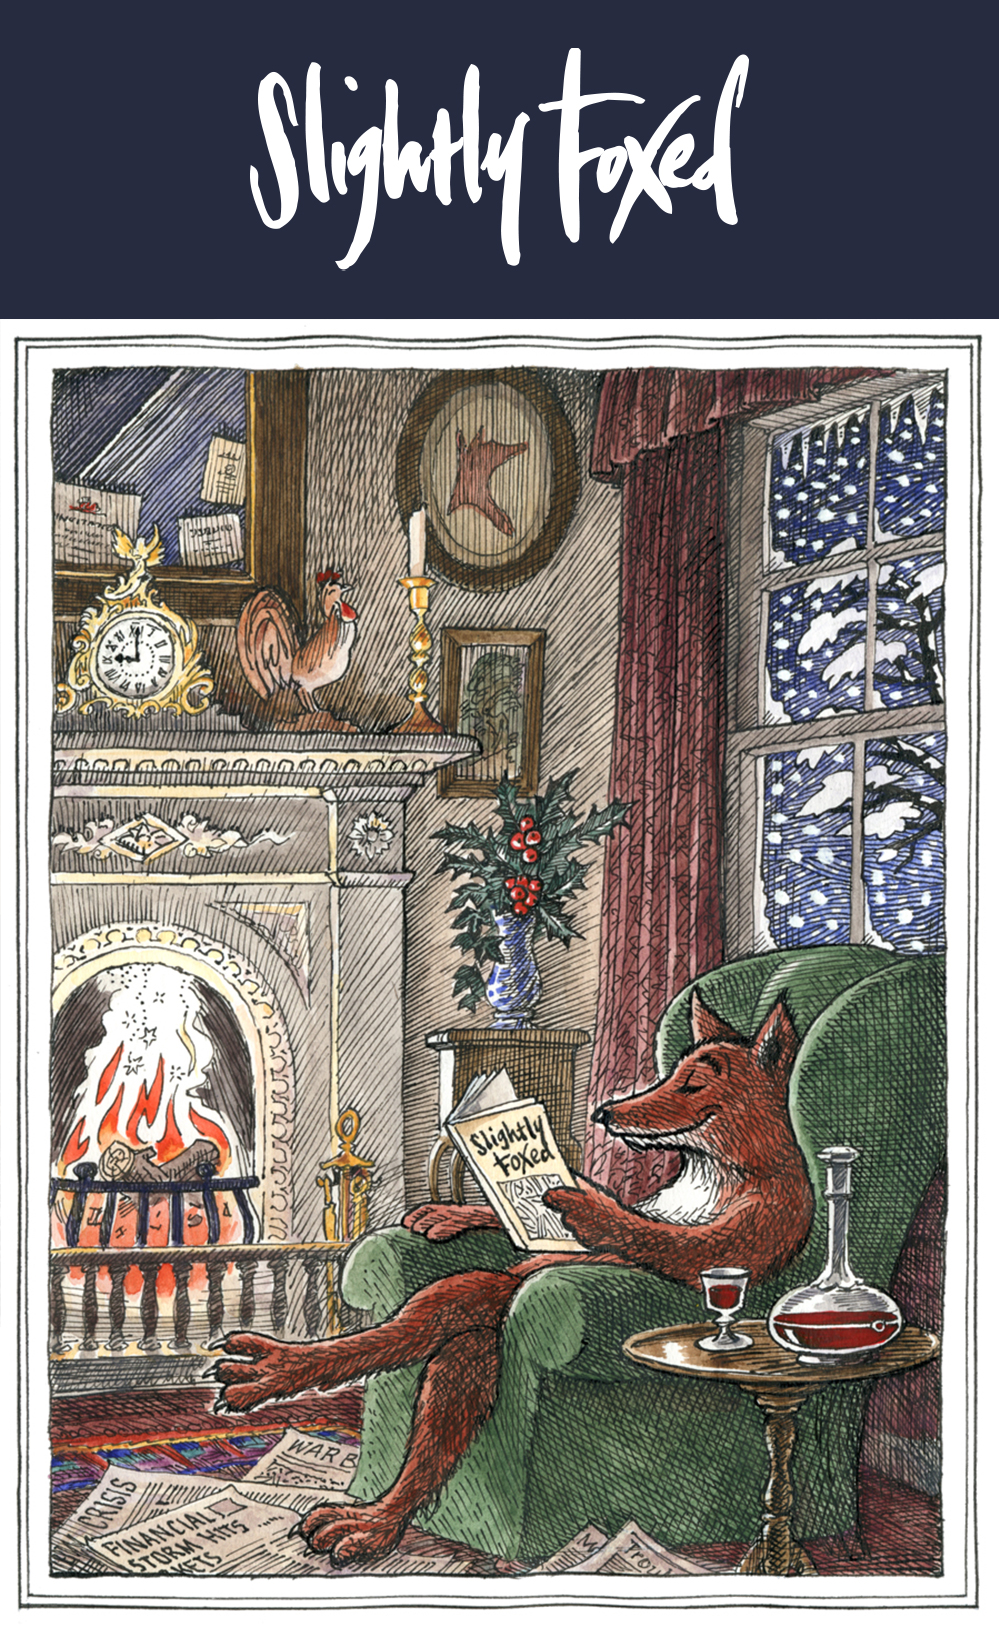 Last call for orders and seasonal reading from Slightly Foxed